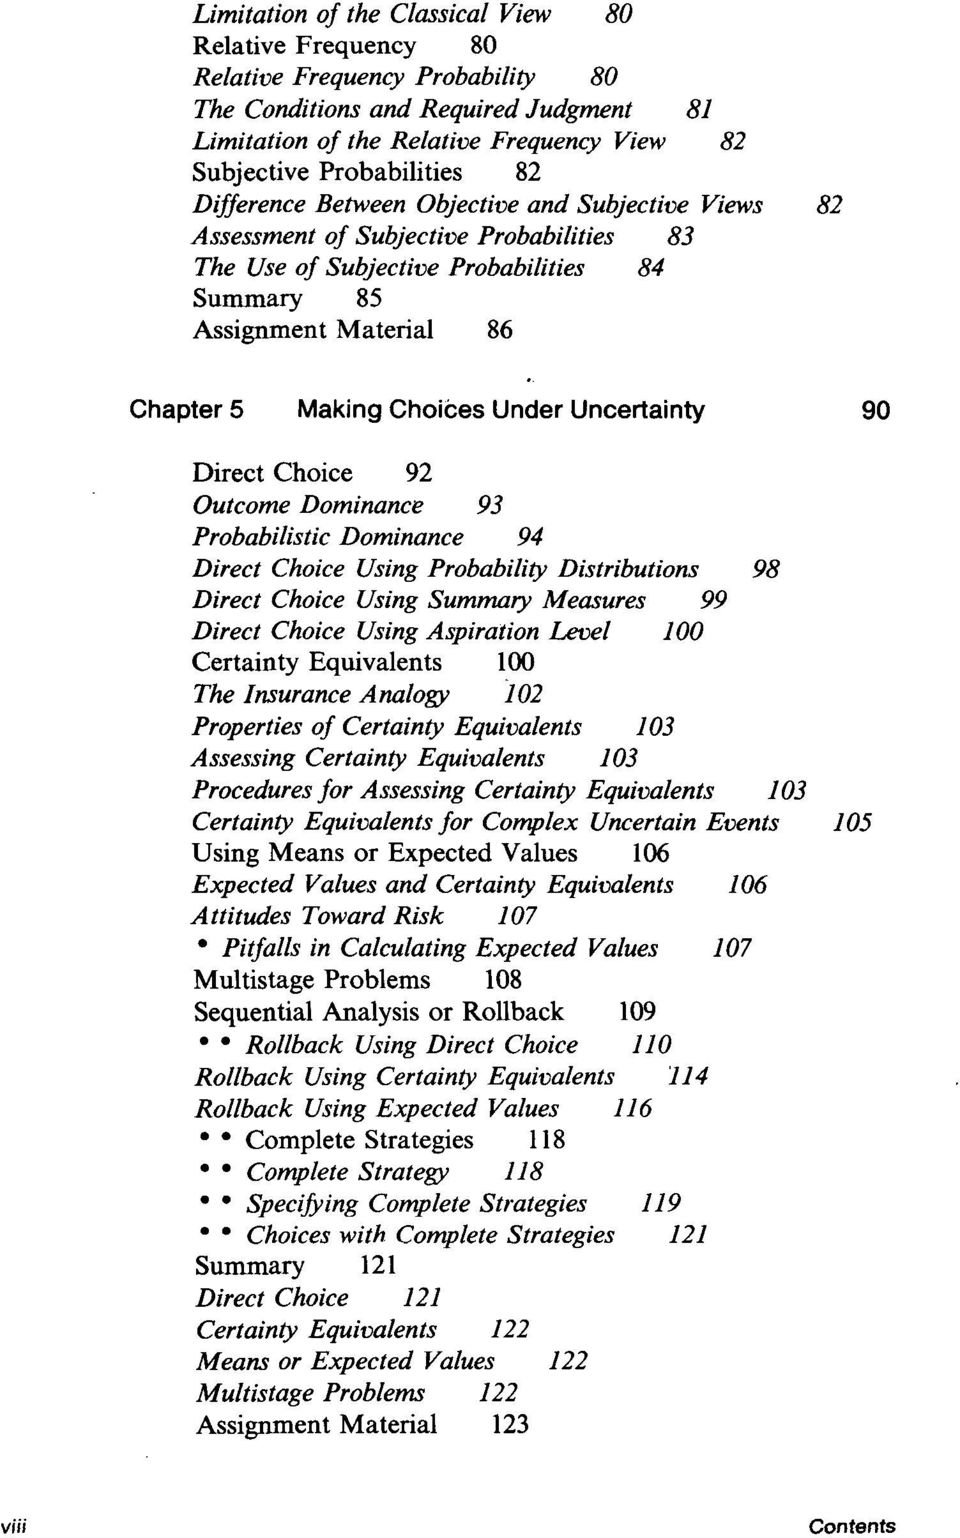 Making Choices Under Uncertainty 90 Direct Choice 92 Outcome Dominance 93 Probabilistic Dominance 94 Direct Choice Using Probability Distributions 98 Direct Choice Using Summary Measures 99 Direct